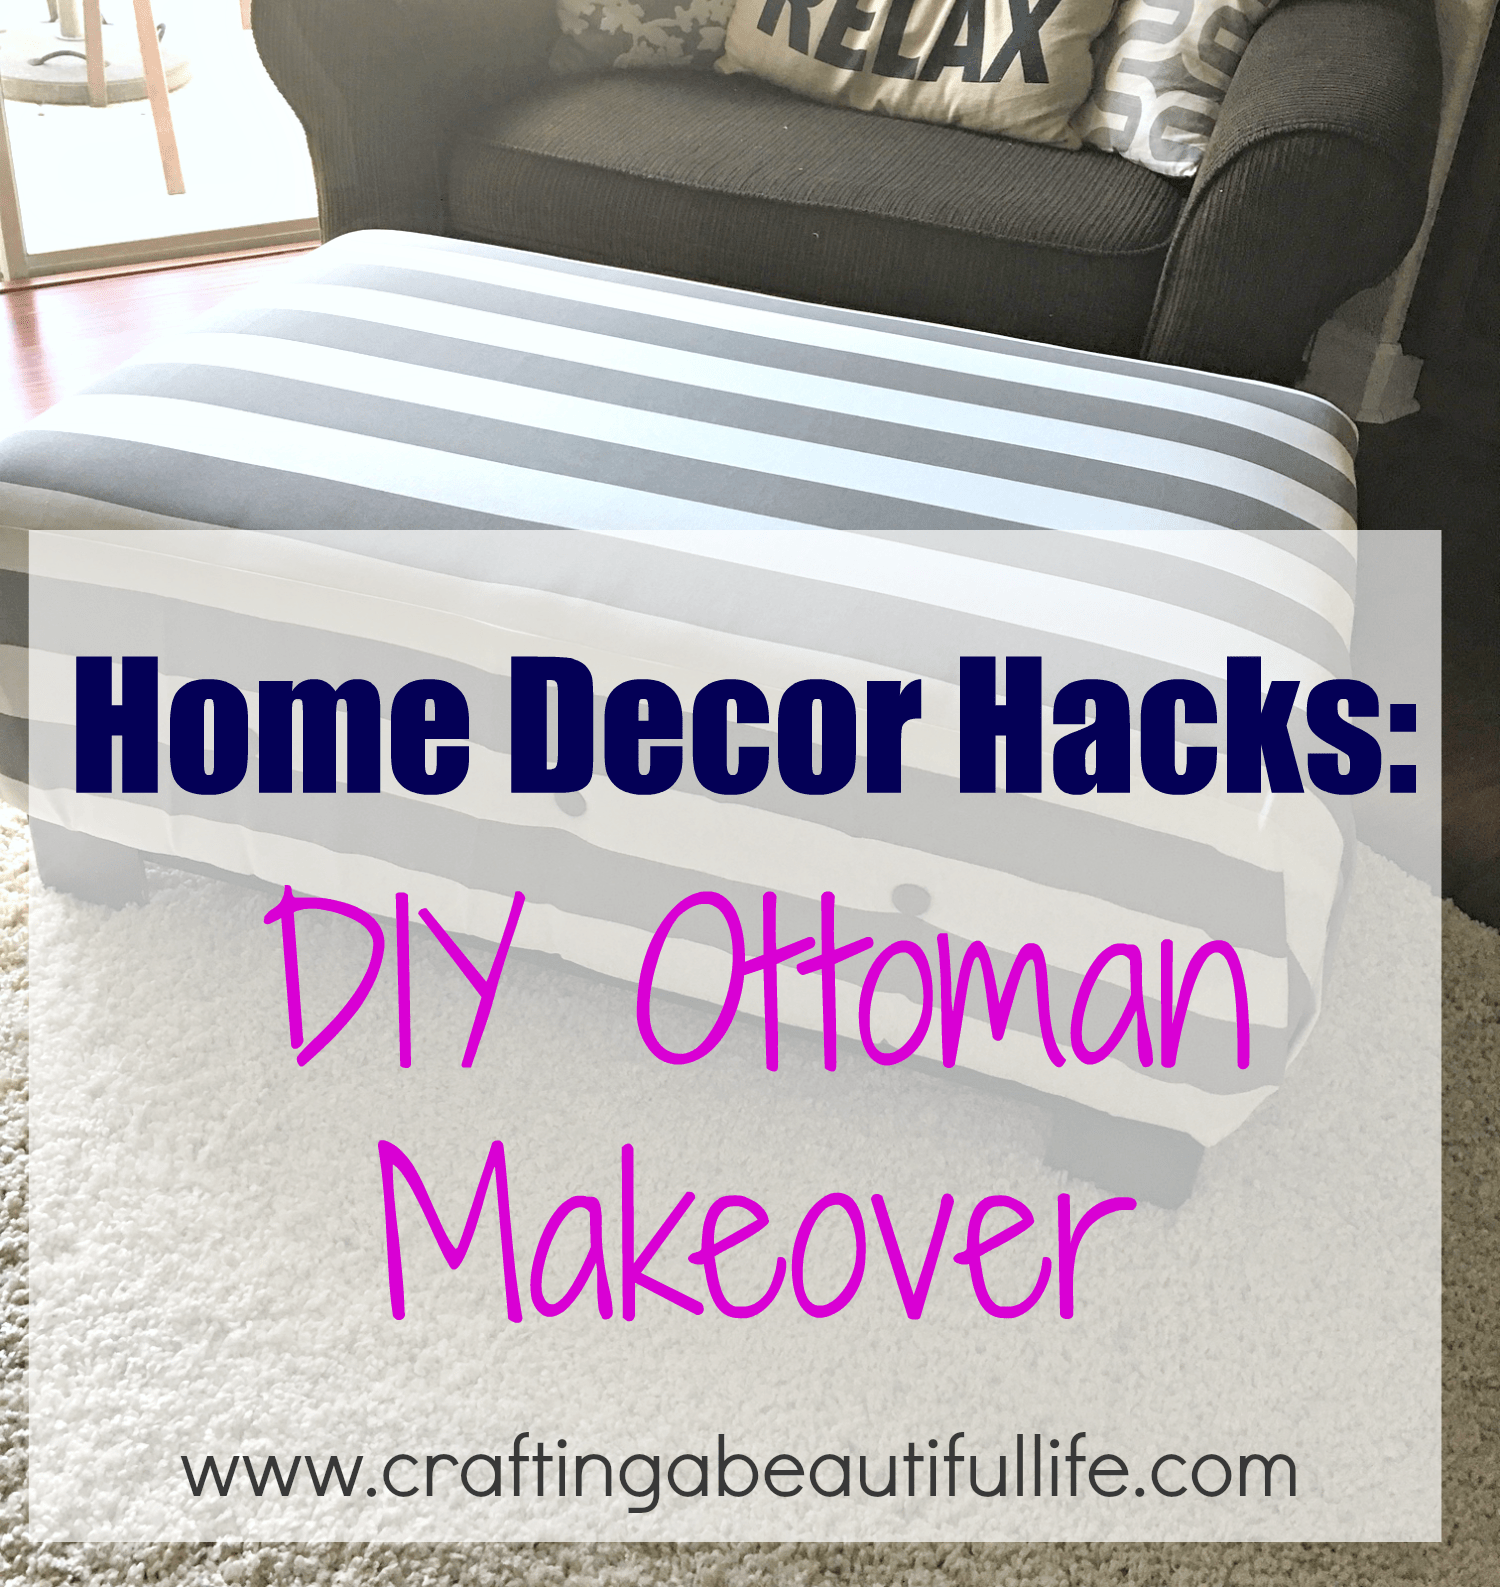 Marvelous Home Decor Hacks For Recovering An Old Ottoman In Your Home Machost Co Dining Chair Design Ideas Machostcouk